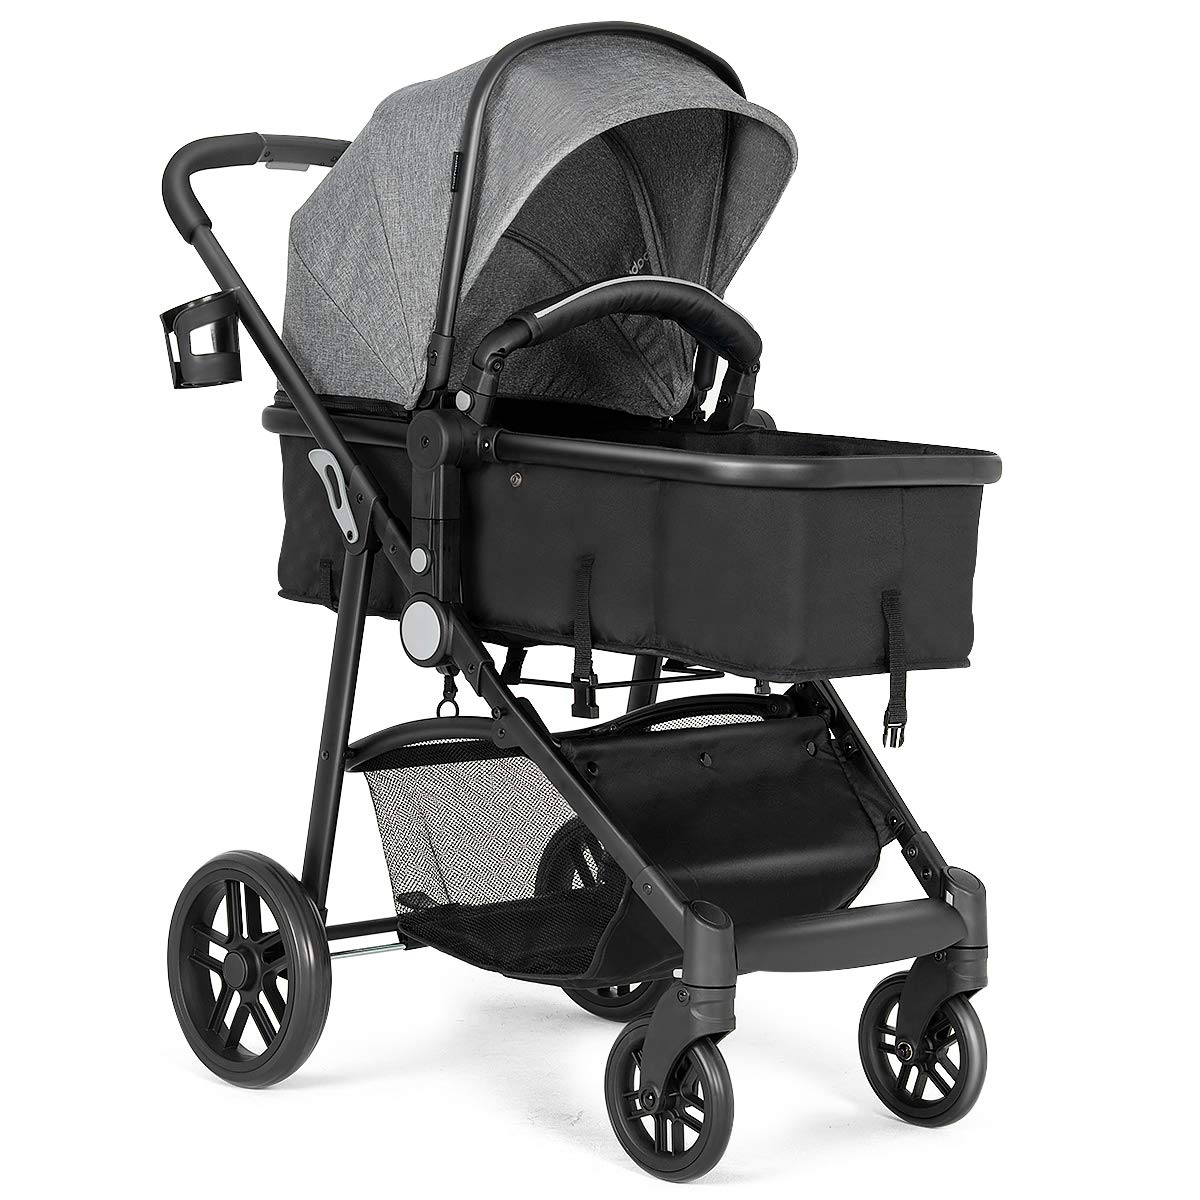 BABY JOY Baby Stroller, 2 in 1 Convertible Carriage Bassinet to Stroller, Pushchair with Foot Cover, Cup Holder, Large Storage Space, Wheels Suspension, 5-Point Harness Gray